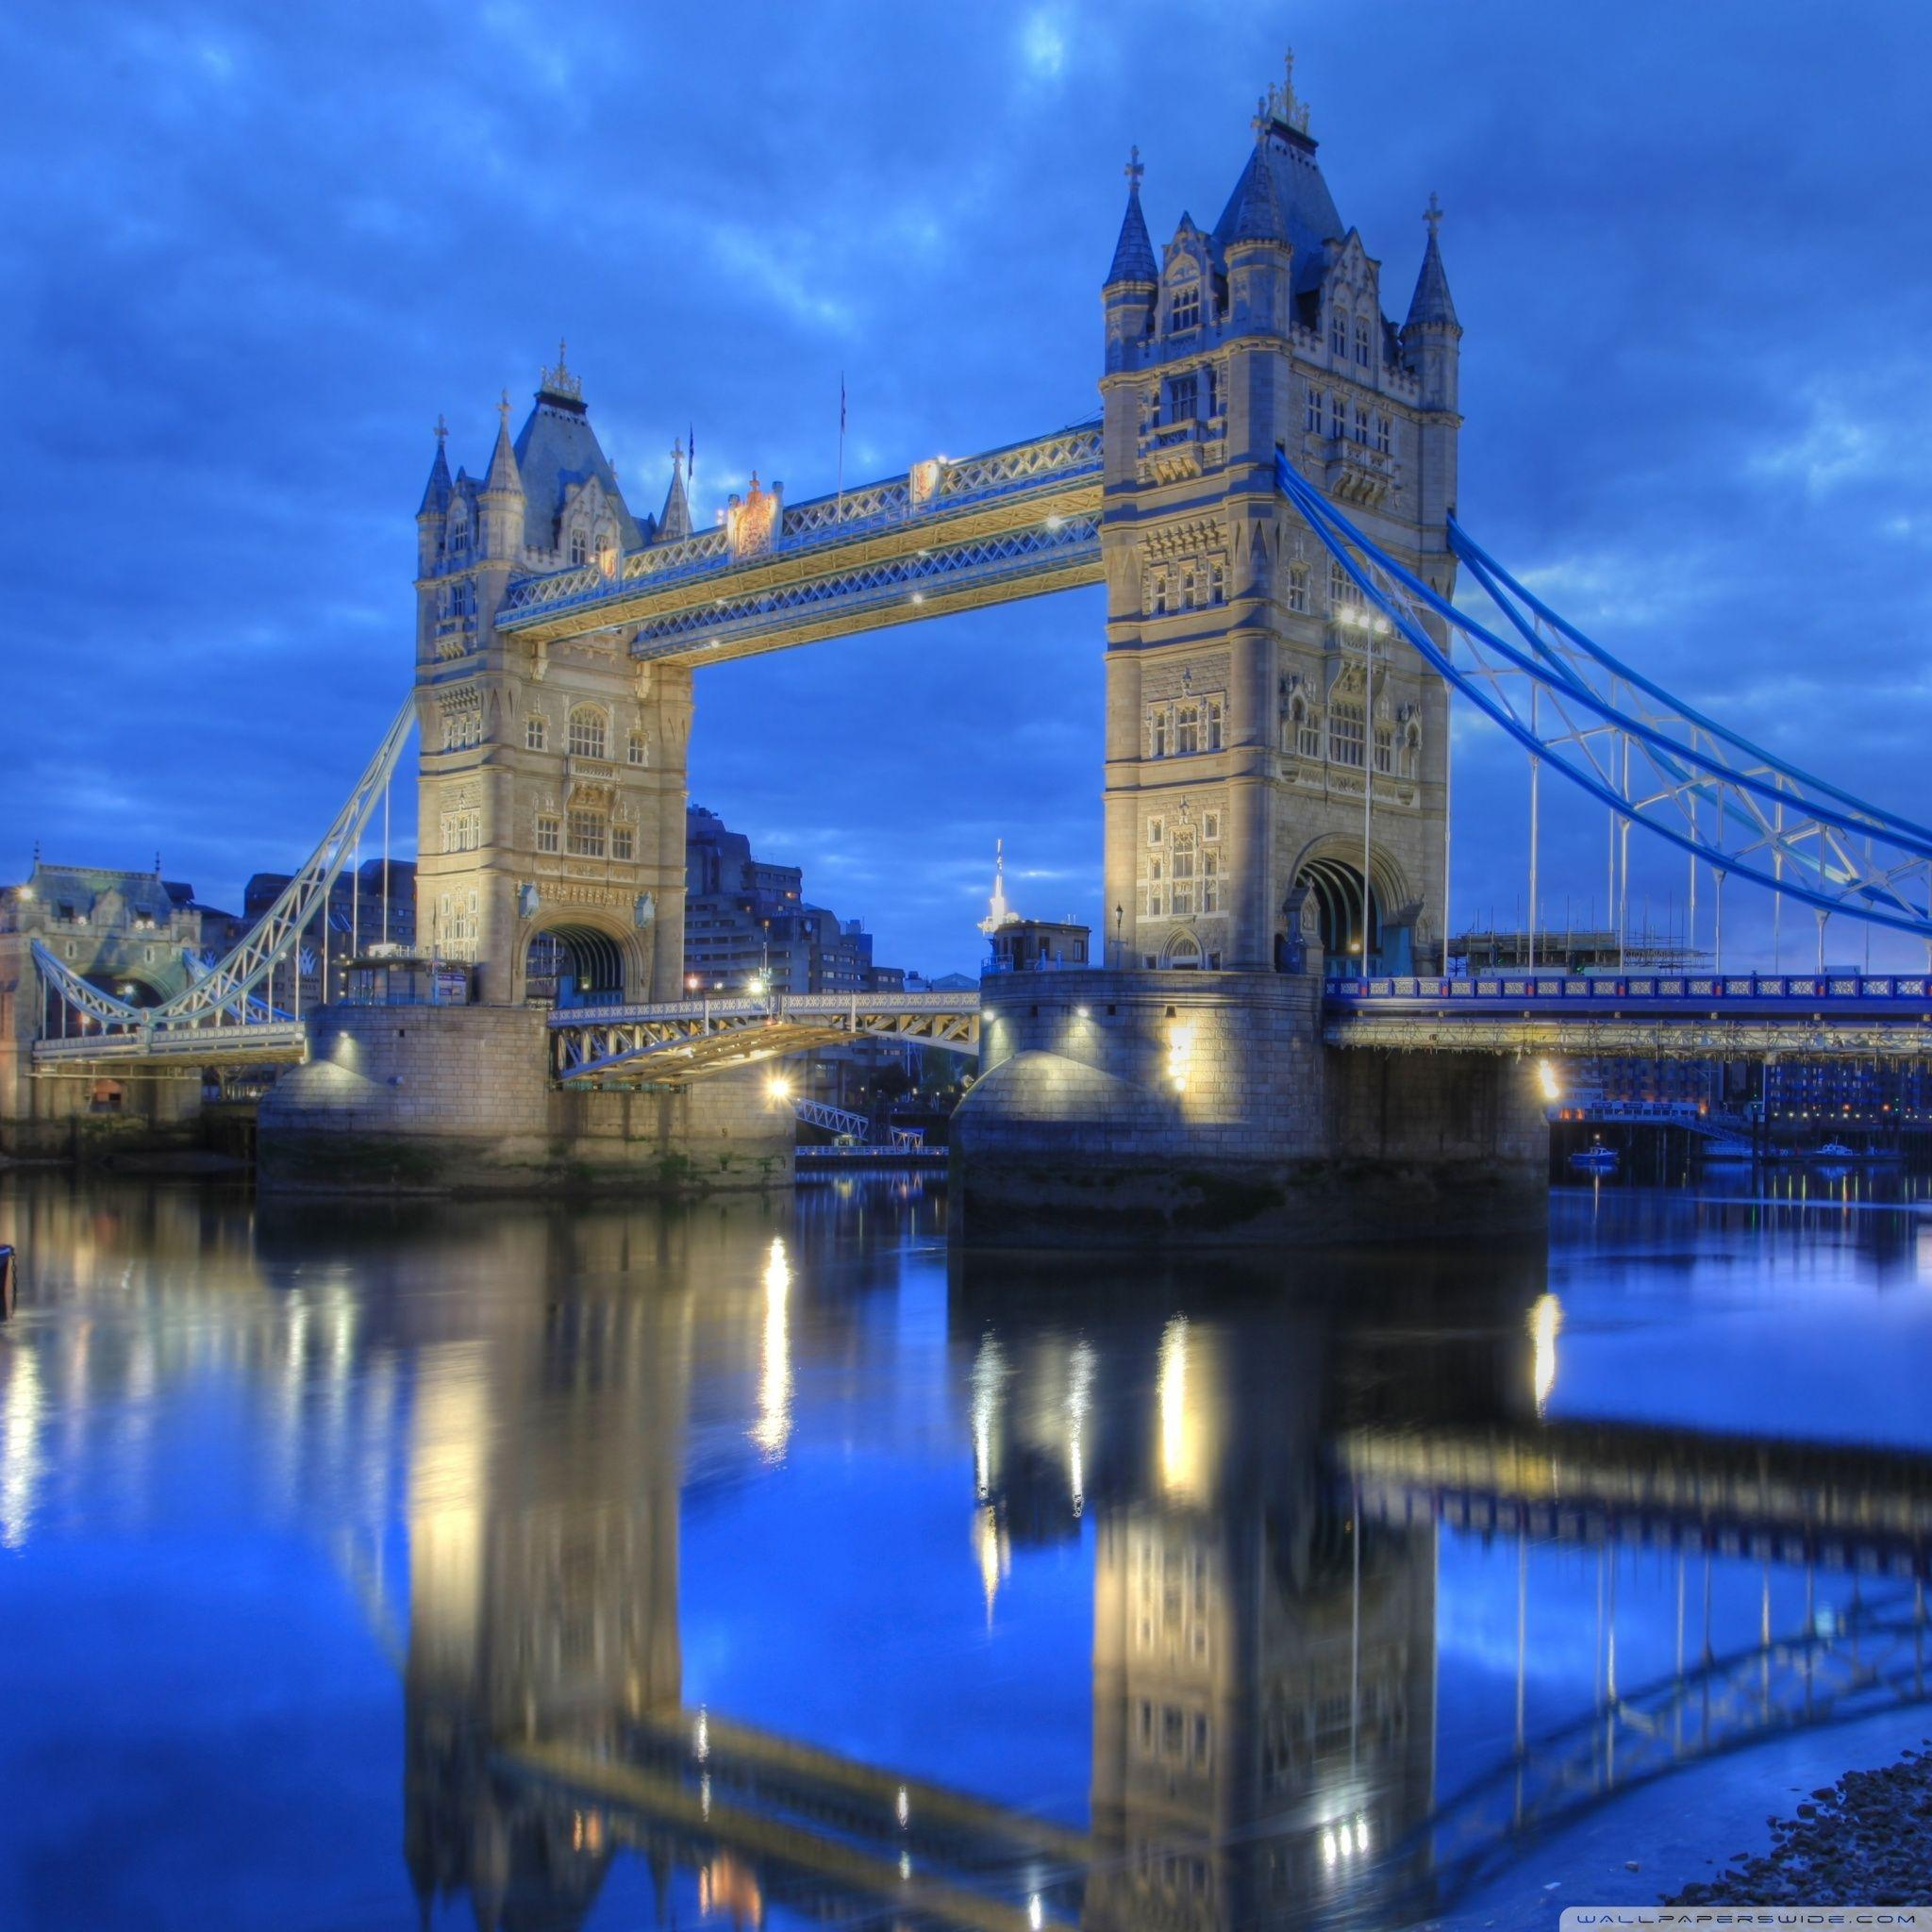 Tower Bridge Wallpapers - Top Free Tower Bridge Backgrounds ...